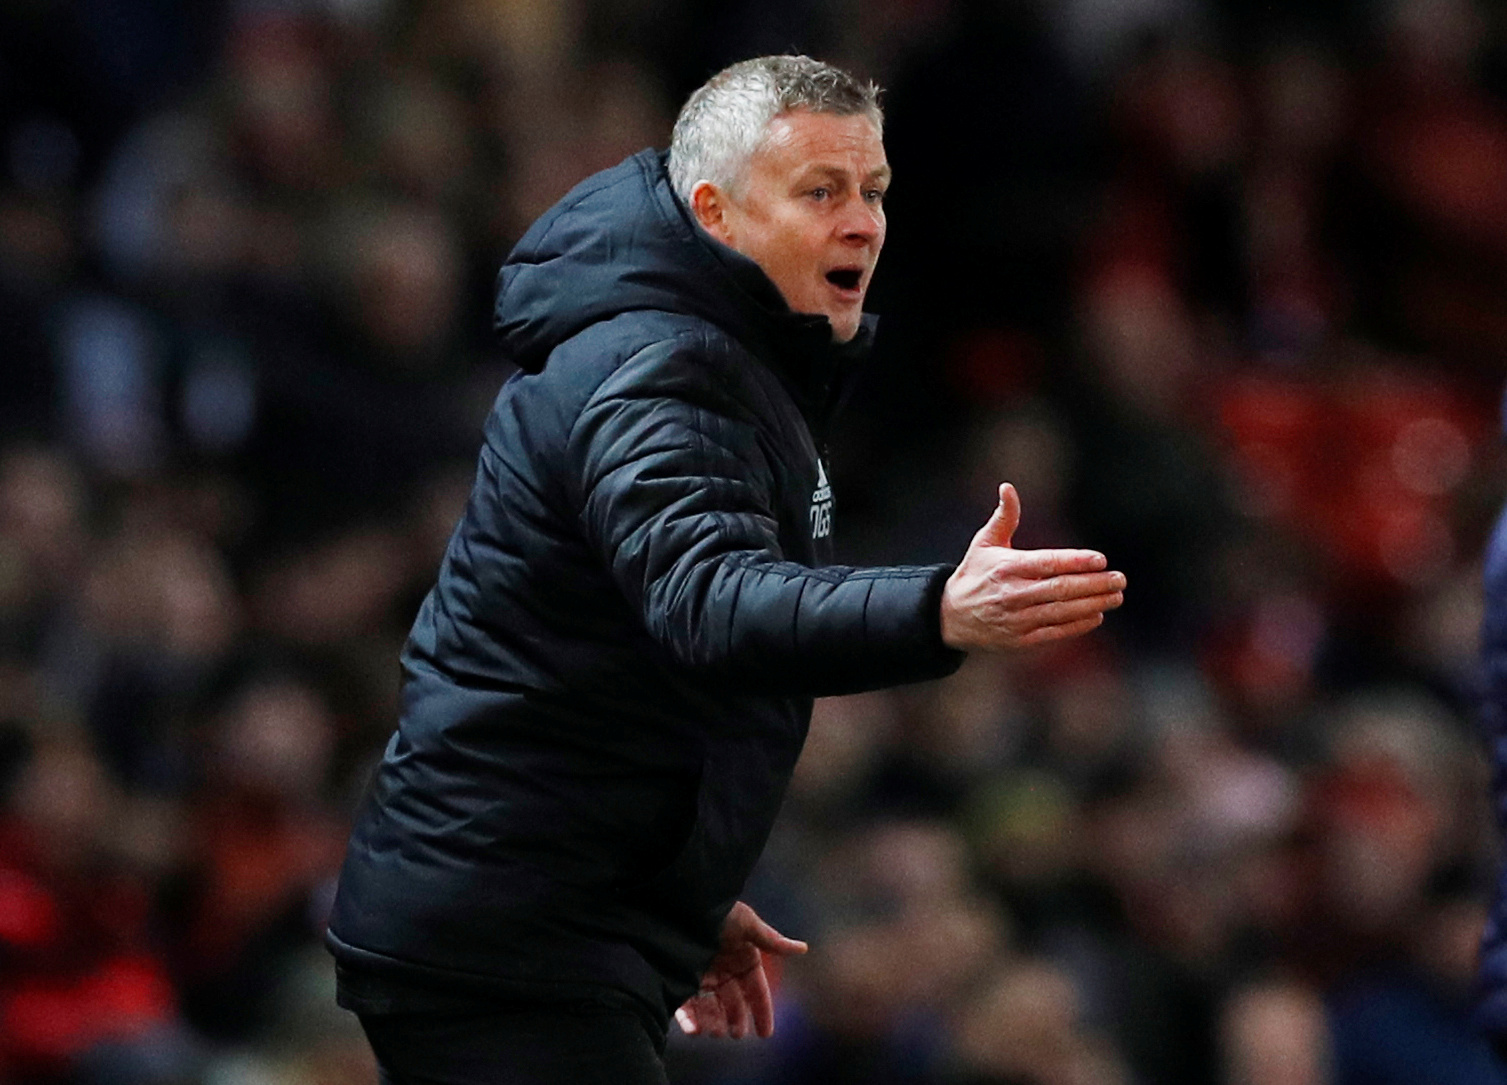 Ole relays his fear to Manchester United players about getting sacked